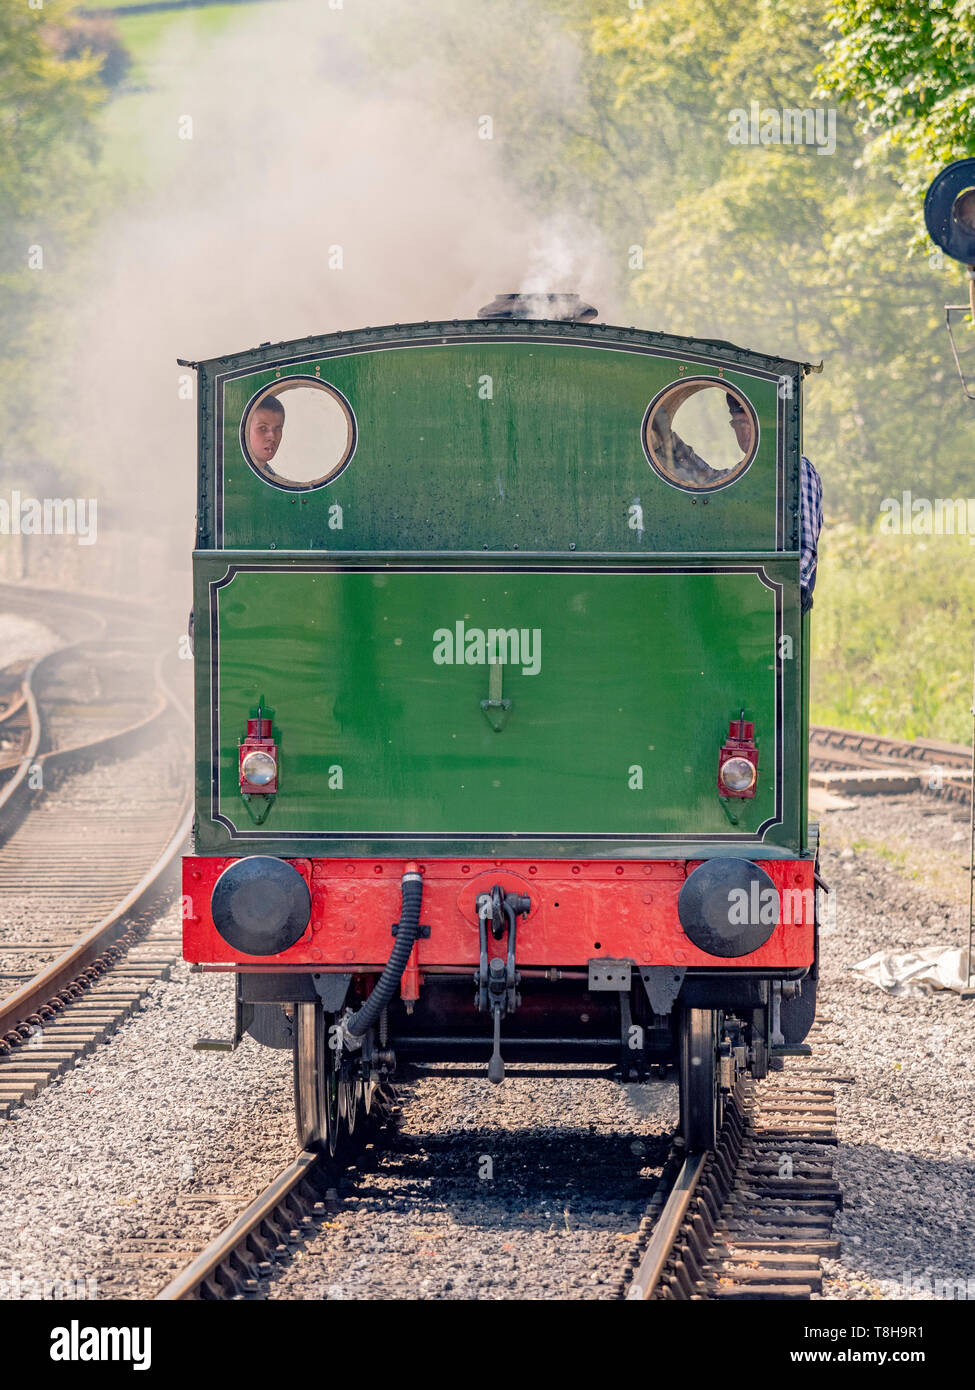 Sir Robert Alpine and Sons, Engine No. 88. Embsay and Bolton steam railway. Bolton Station, Yorkshire Dales, UK. - Stock Image